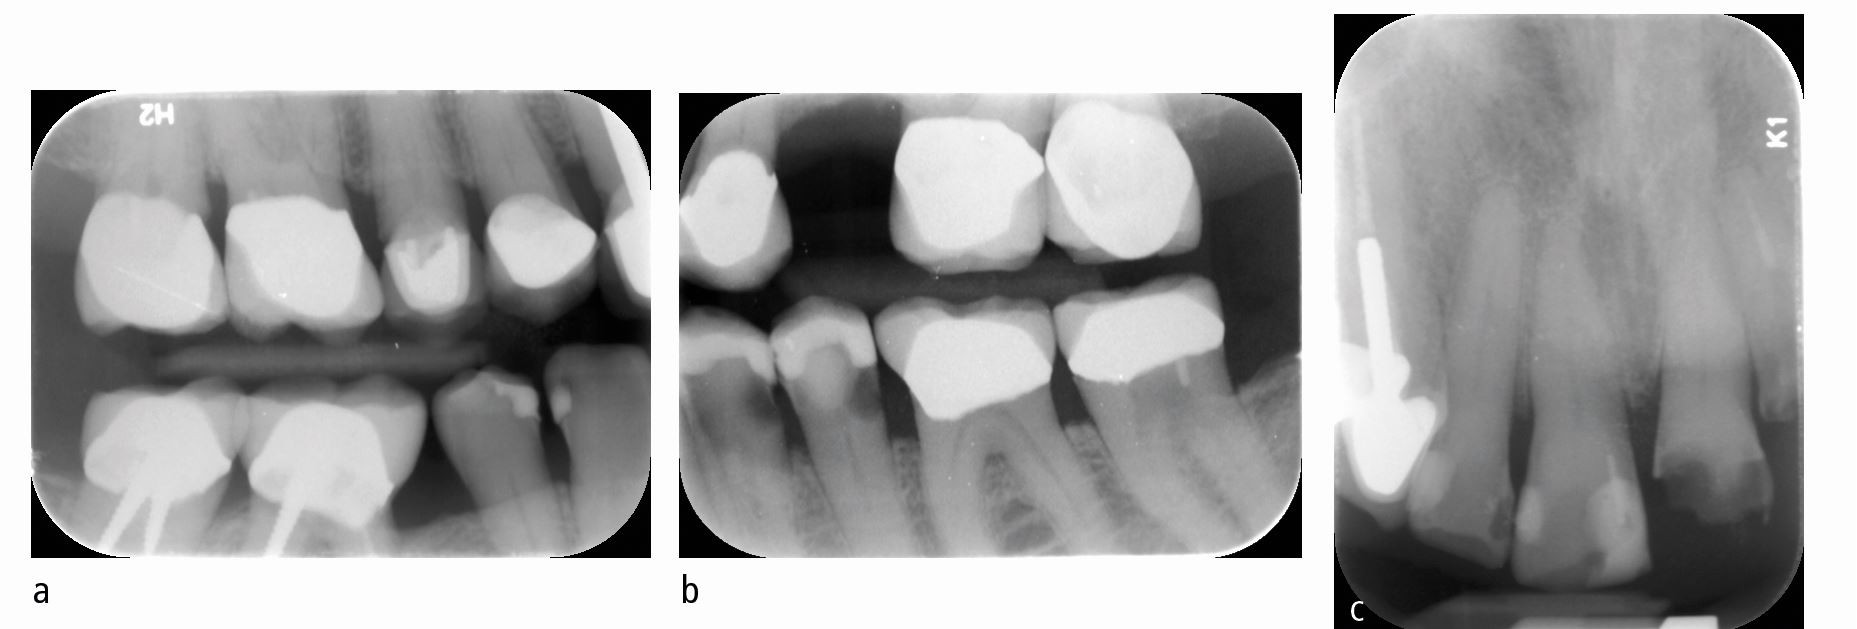 Dentistry and Parkinson's disease: learnings from two case reports